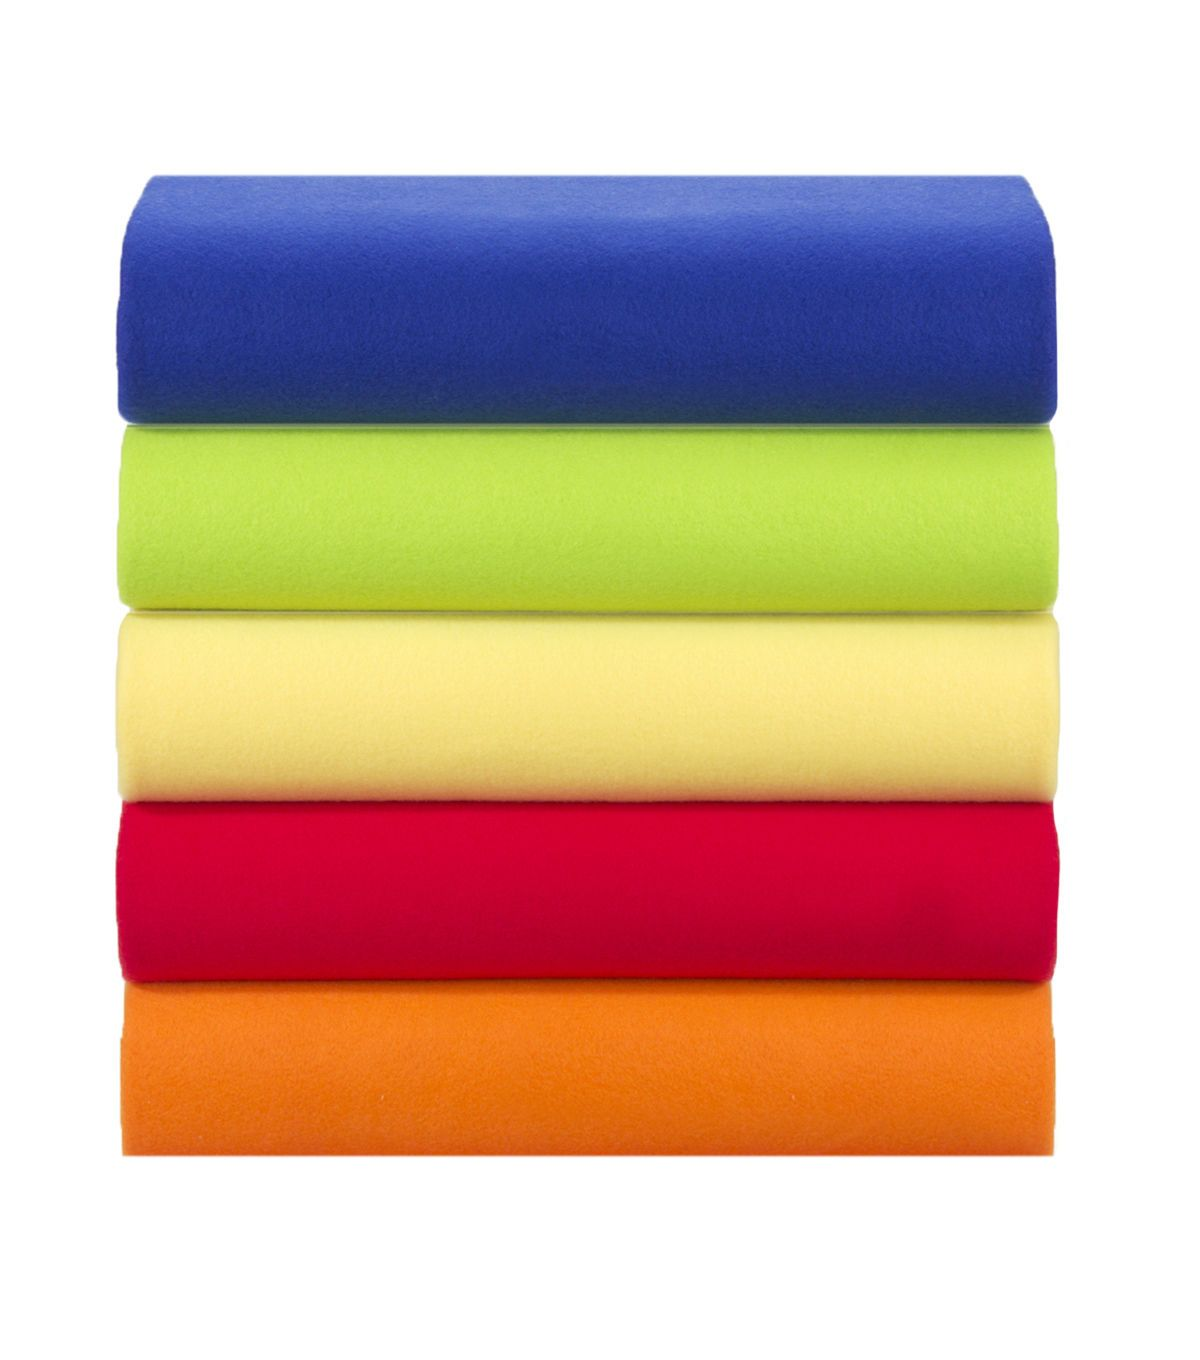 Blizzard fleece fabric solids yard pieces products pinterest